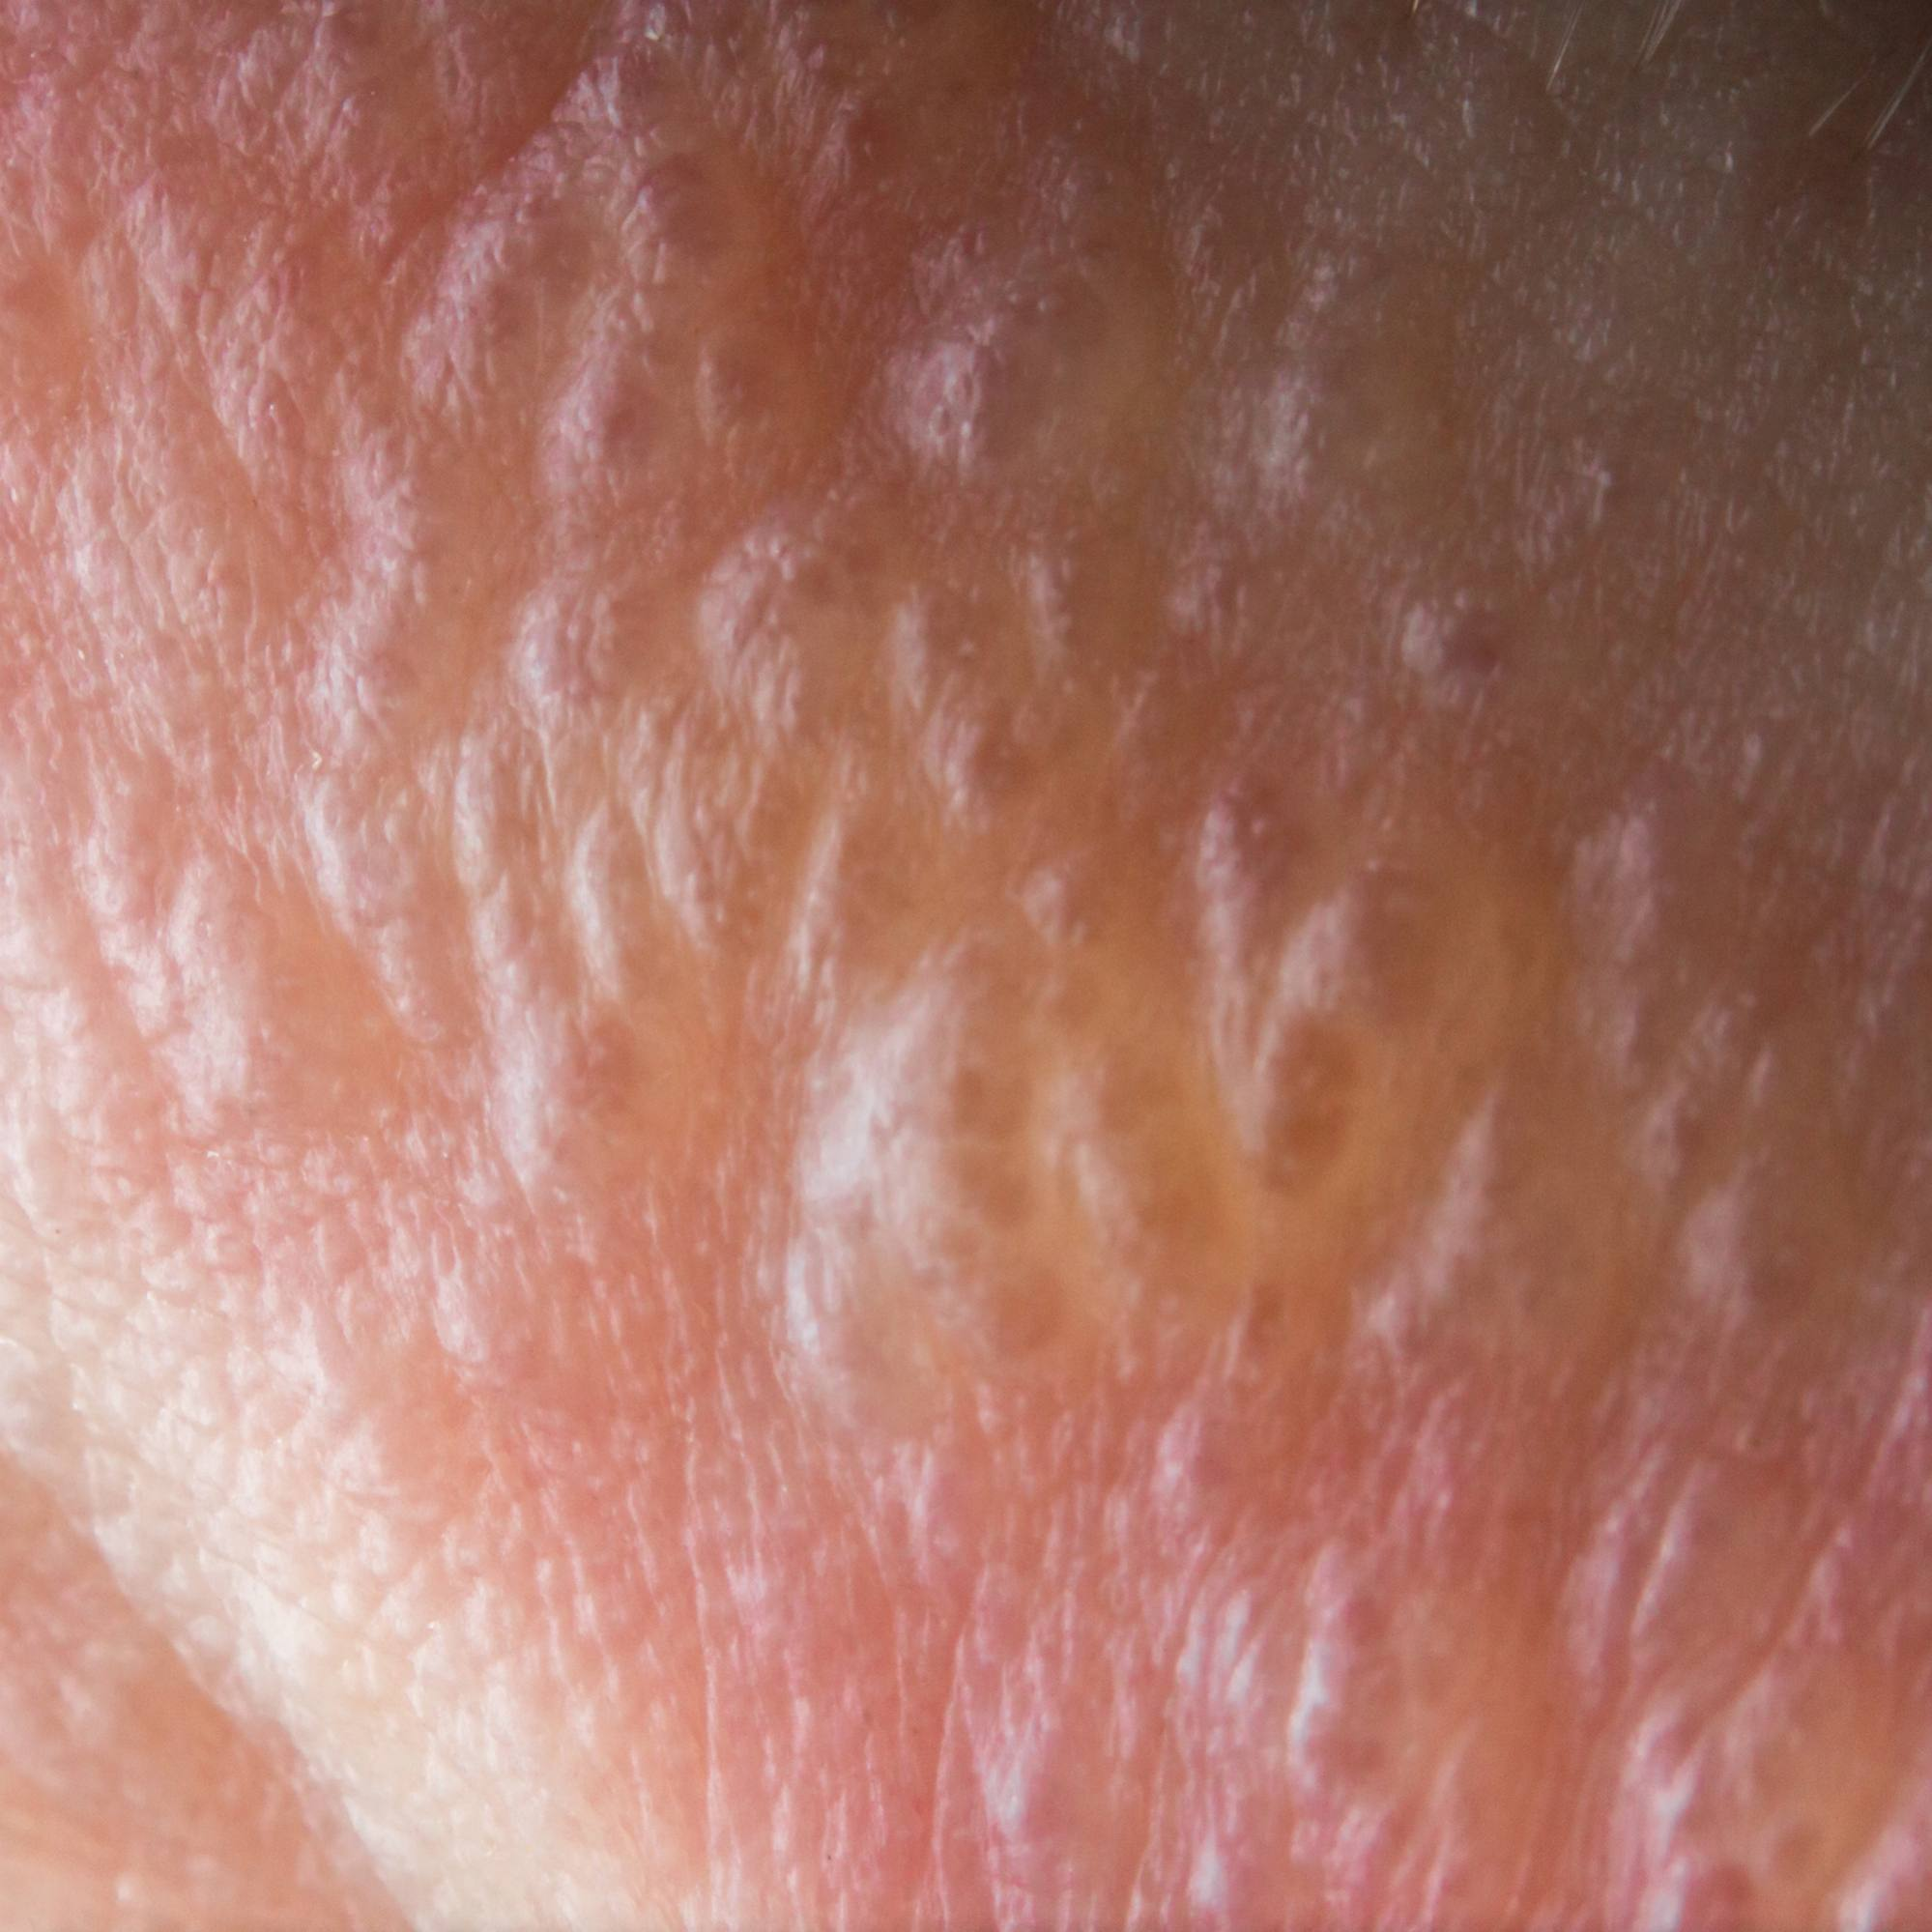 close up of swollen, inflamed poison ivy sore on skin